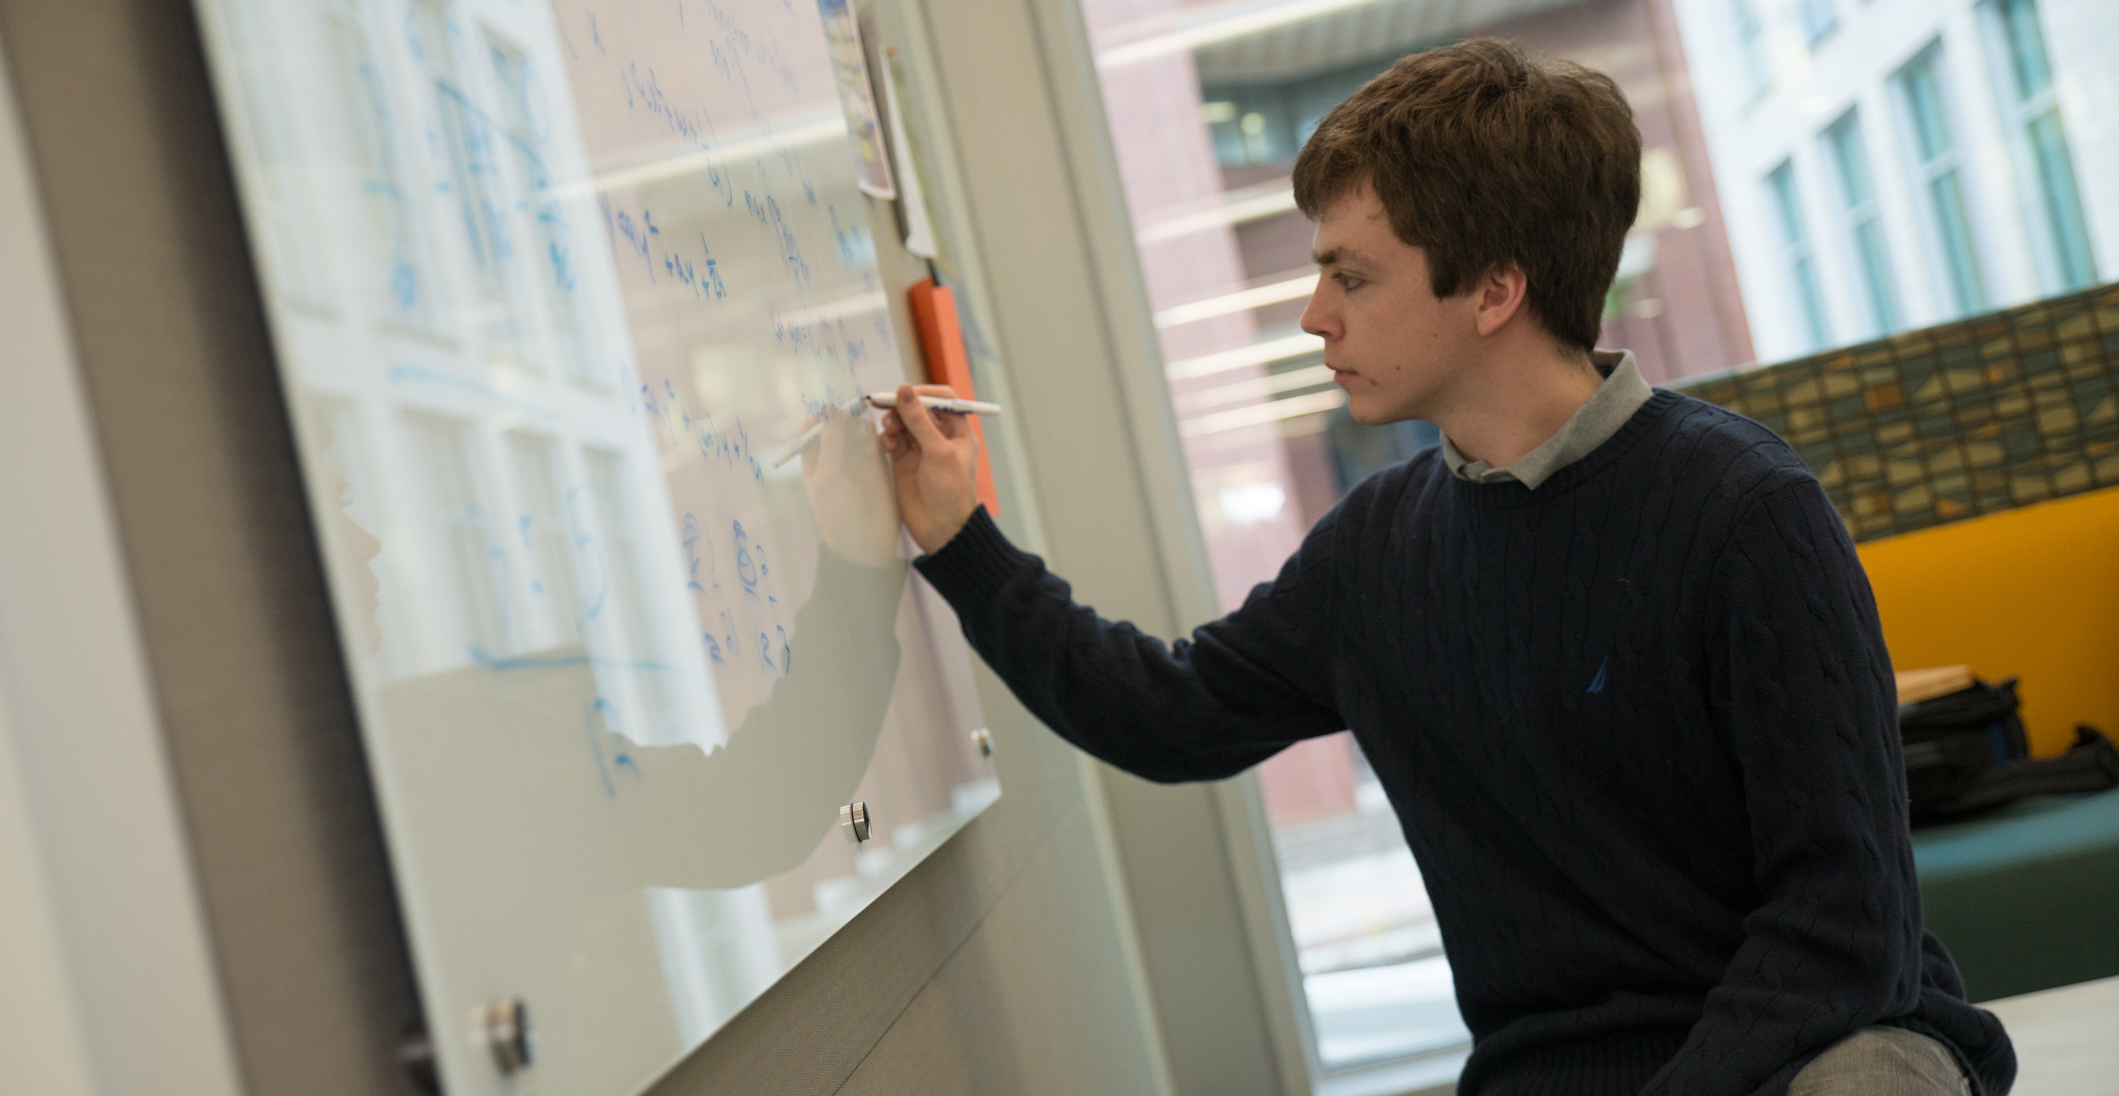 Rory Martin-Hagemeyer practices for the Putnam Competition in the Integrated Sciences Complex